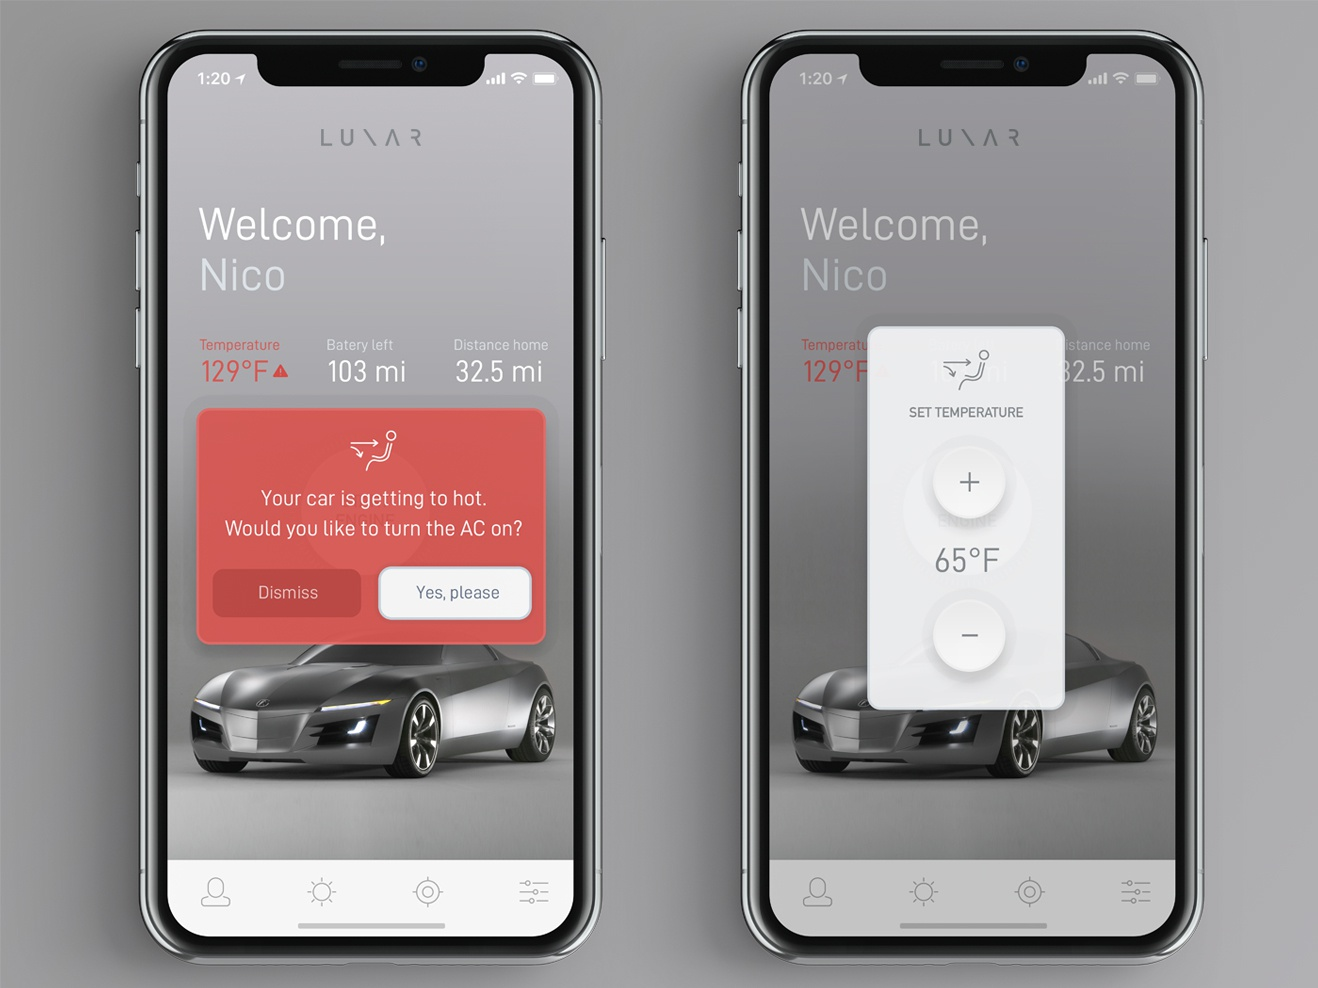 L U N A R App — Free PSD psd file download freebie free clean design alert warning button interface electric vehicle vehicle thermometer temperature control controller modern car ui app